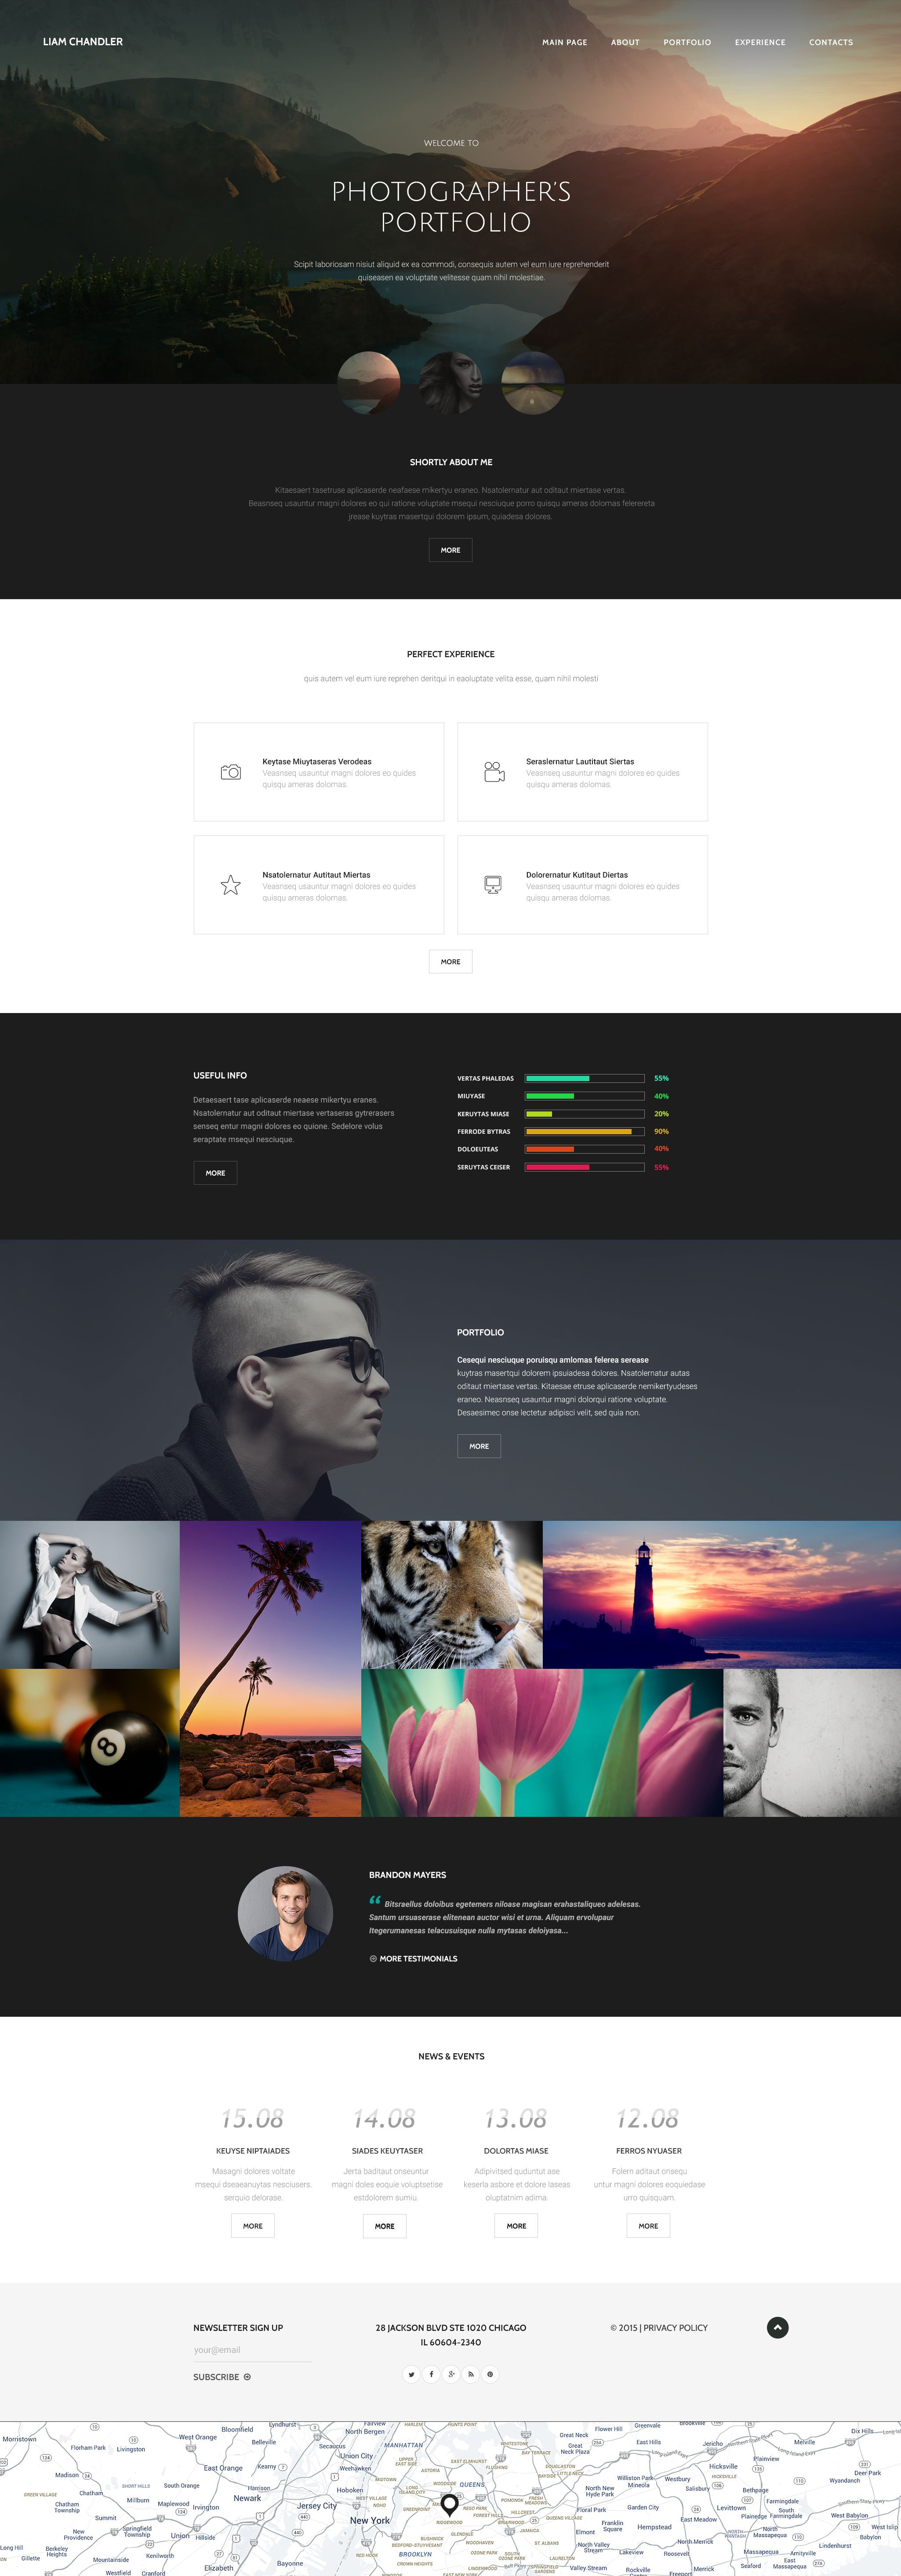 Photographer Portfolio Website Template - screenshot